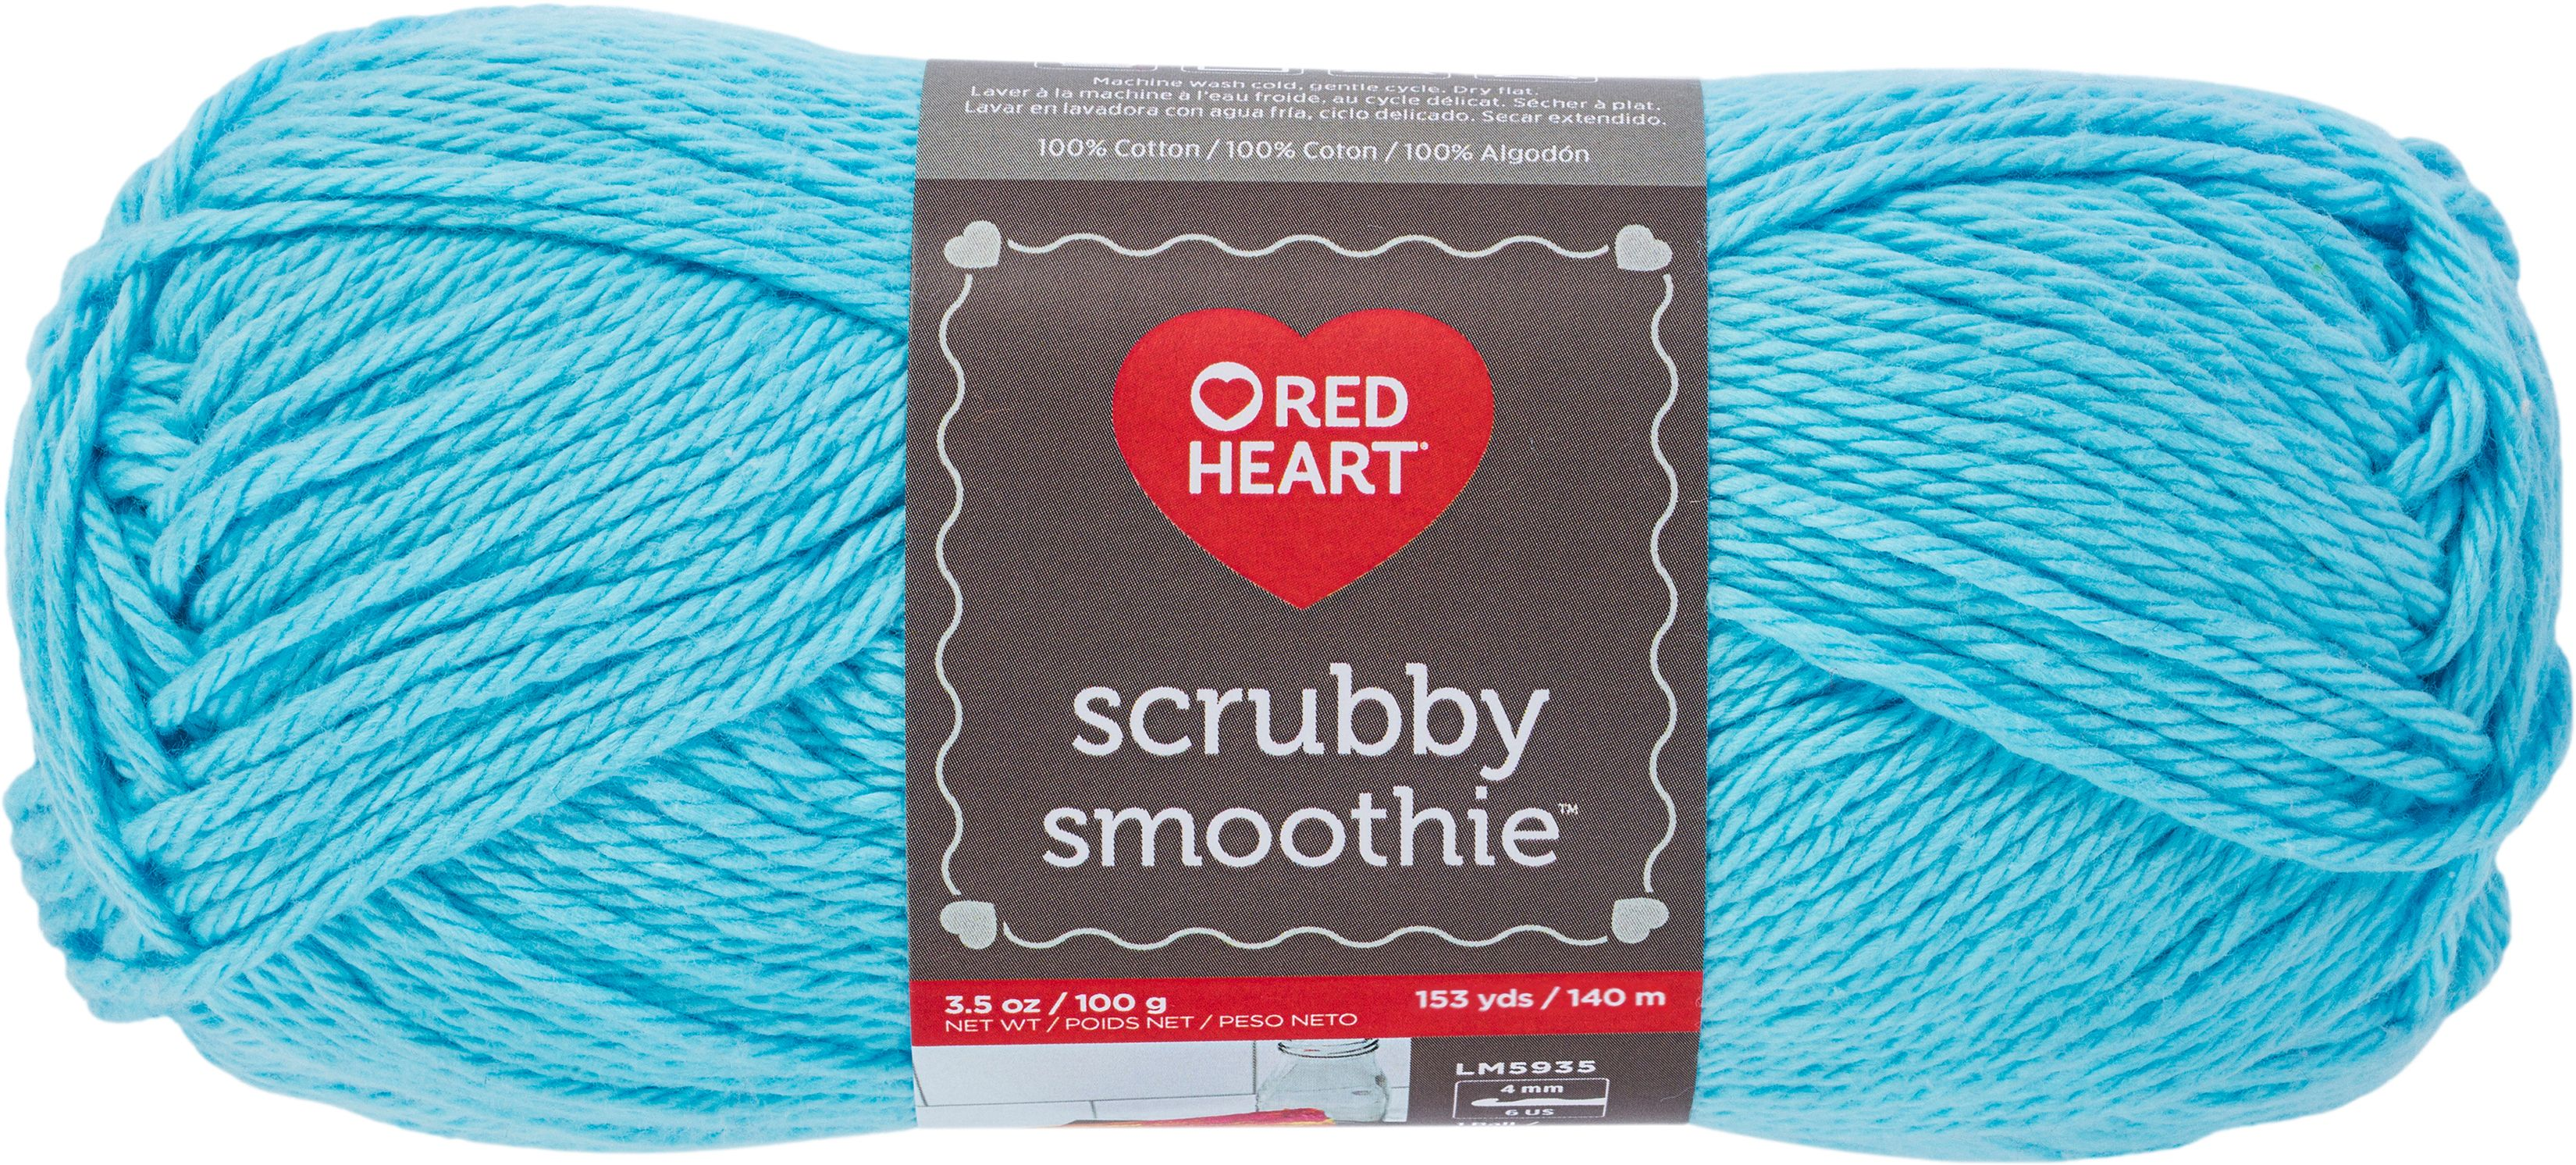 3 Pack Red Heart Scrubby Smoothie Yarn-Caribbean